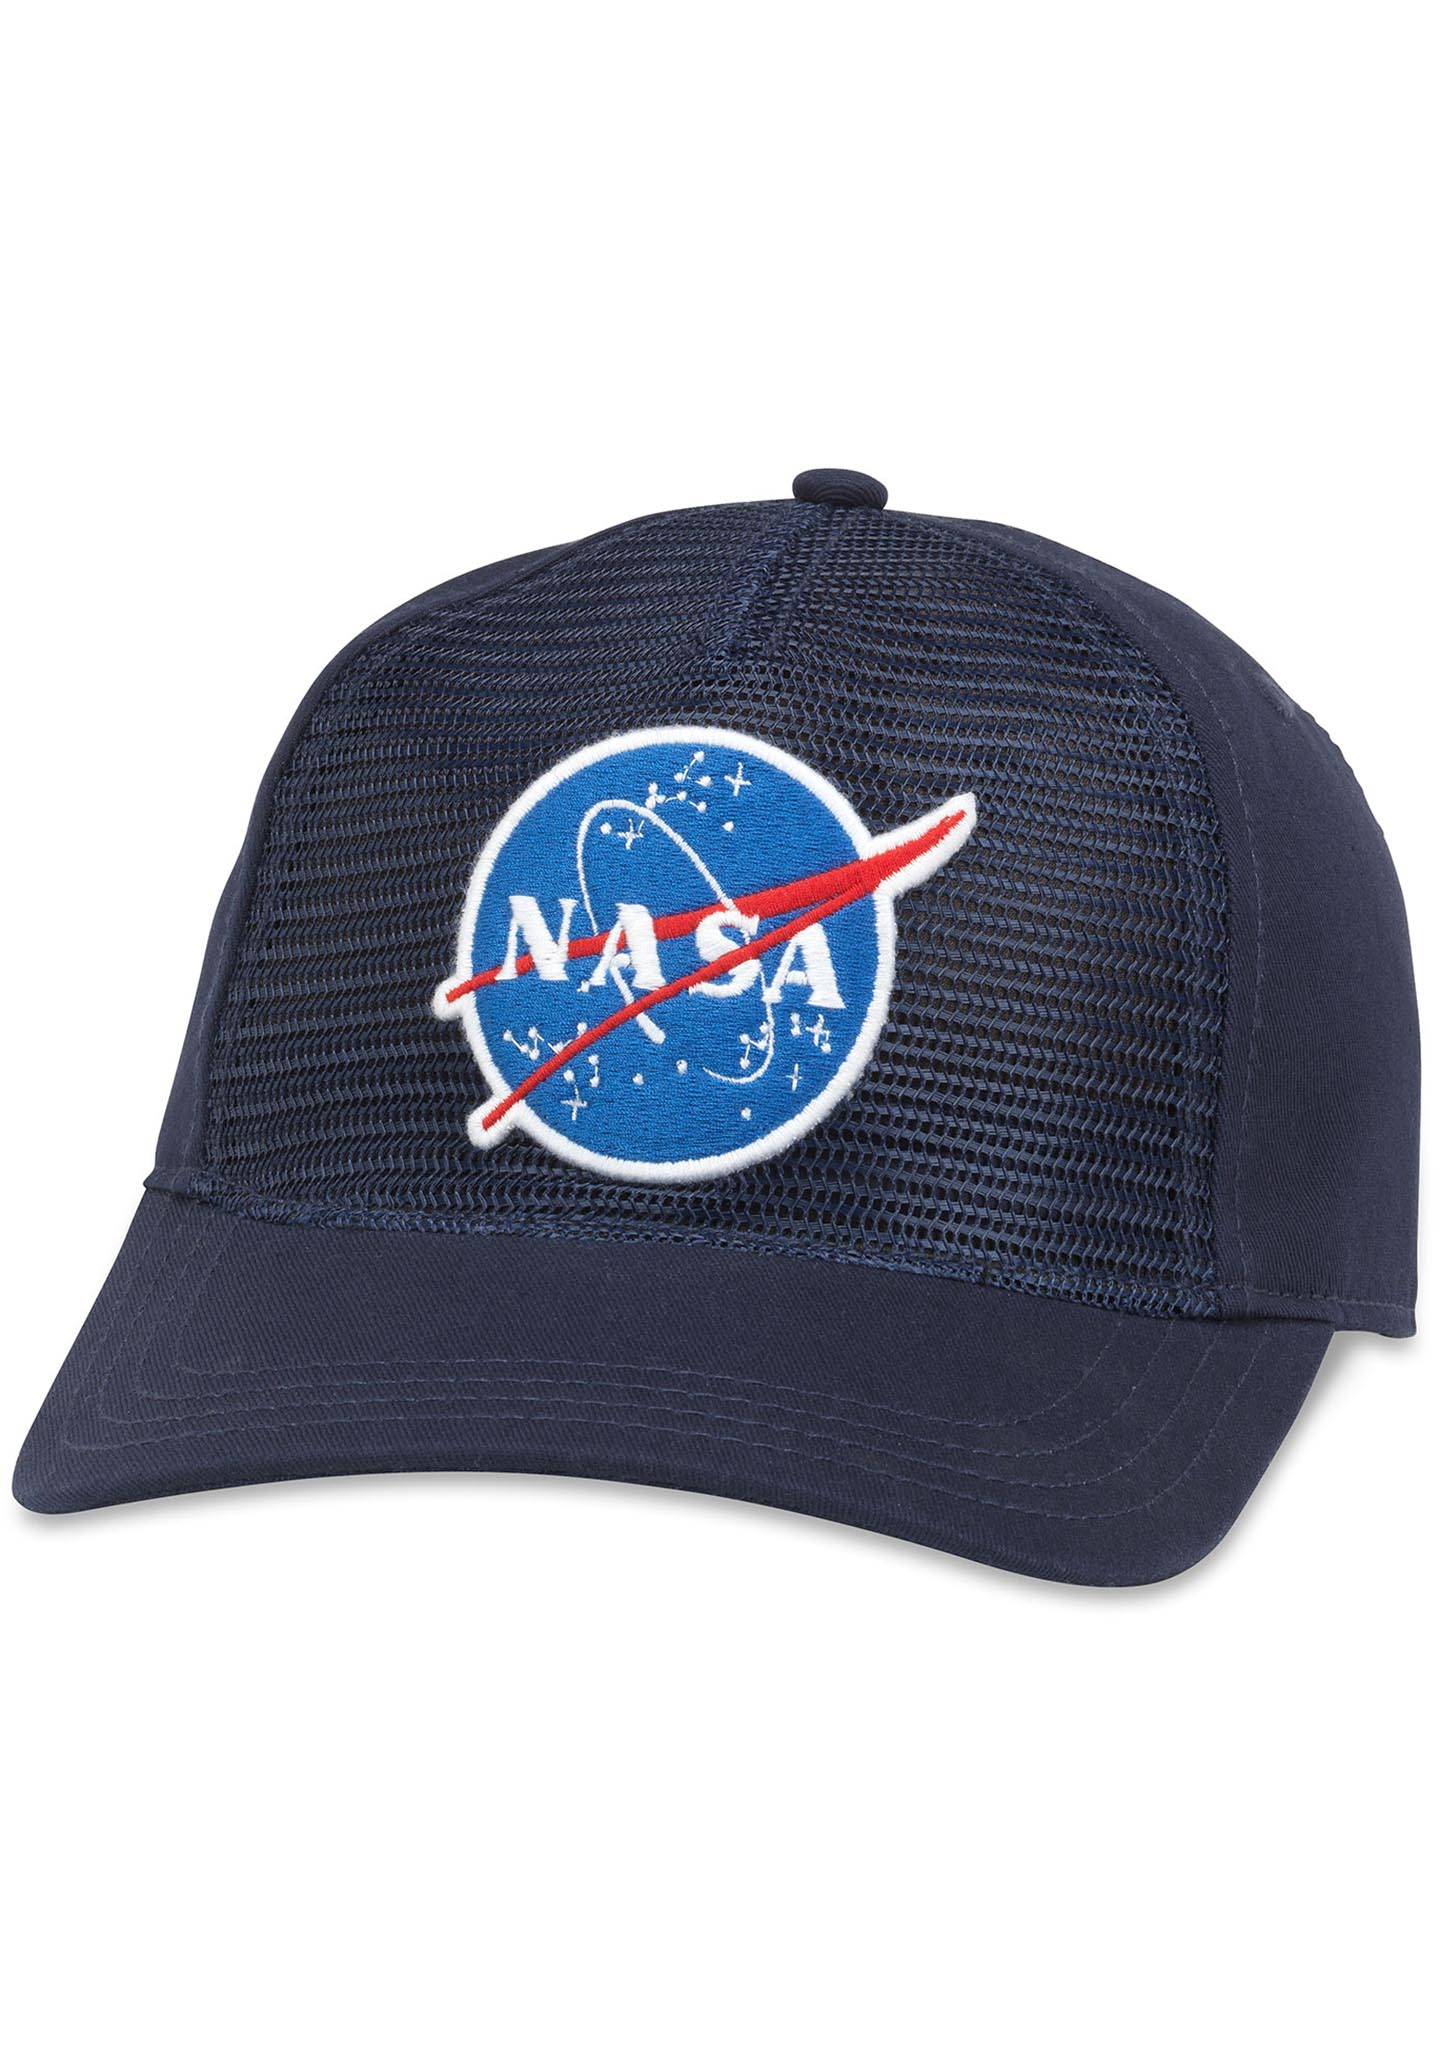 NASA Durham Hat in Navy